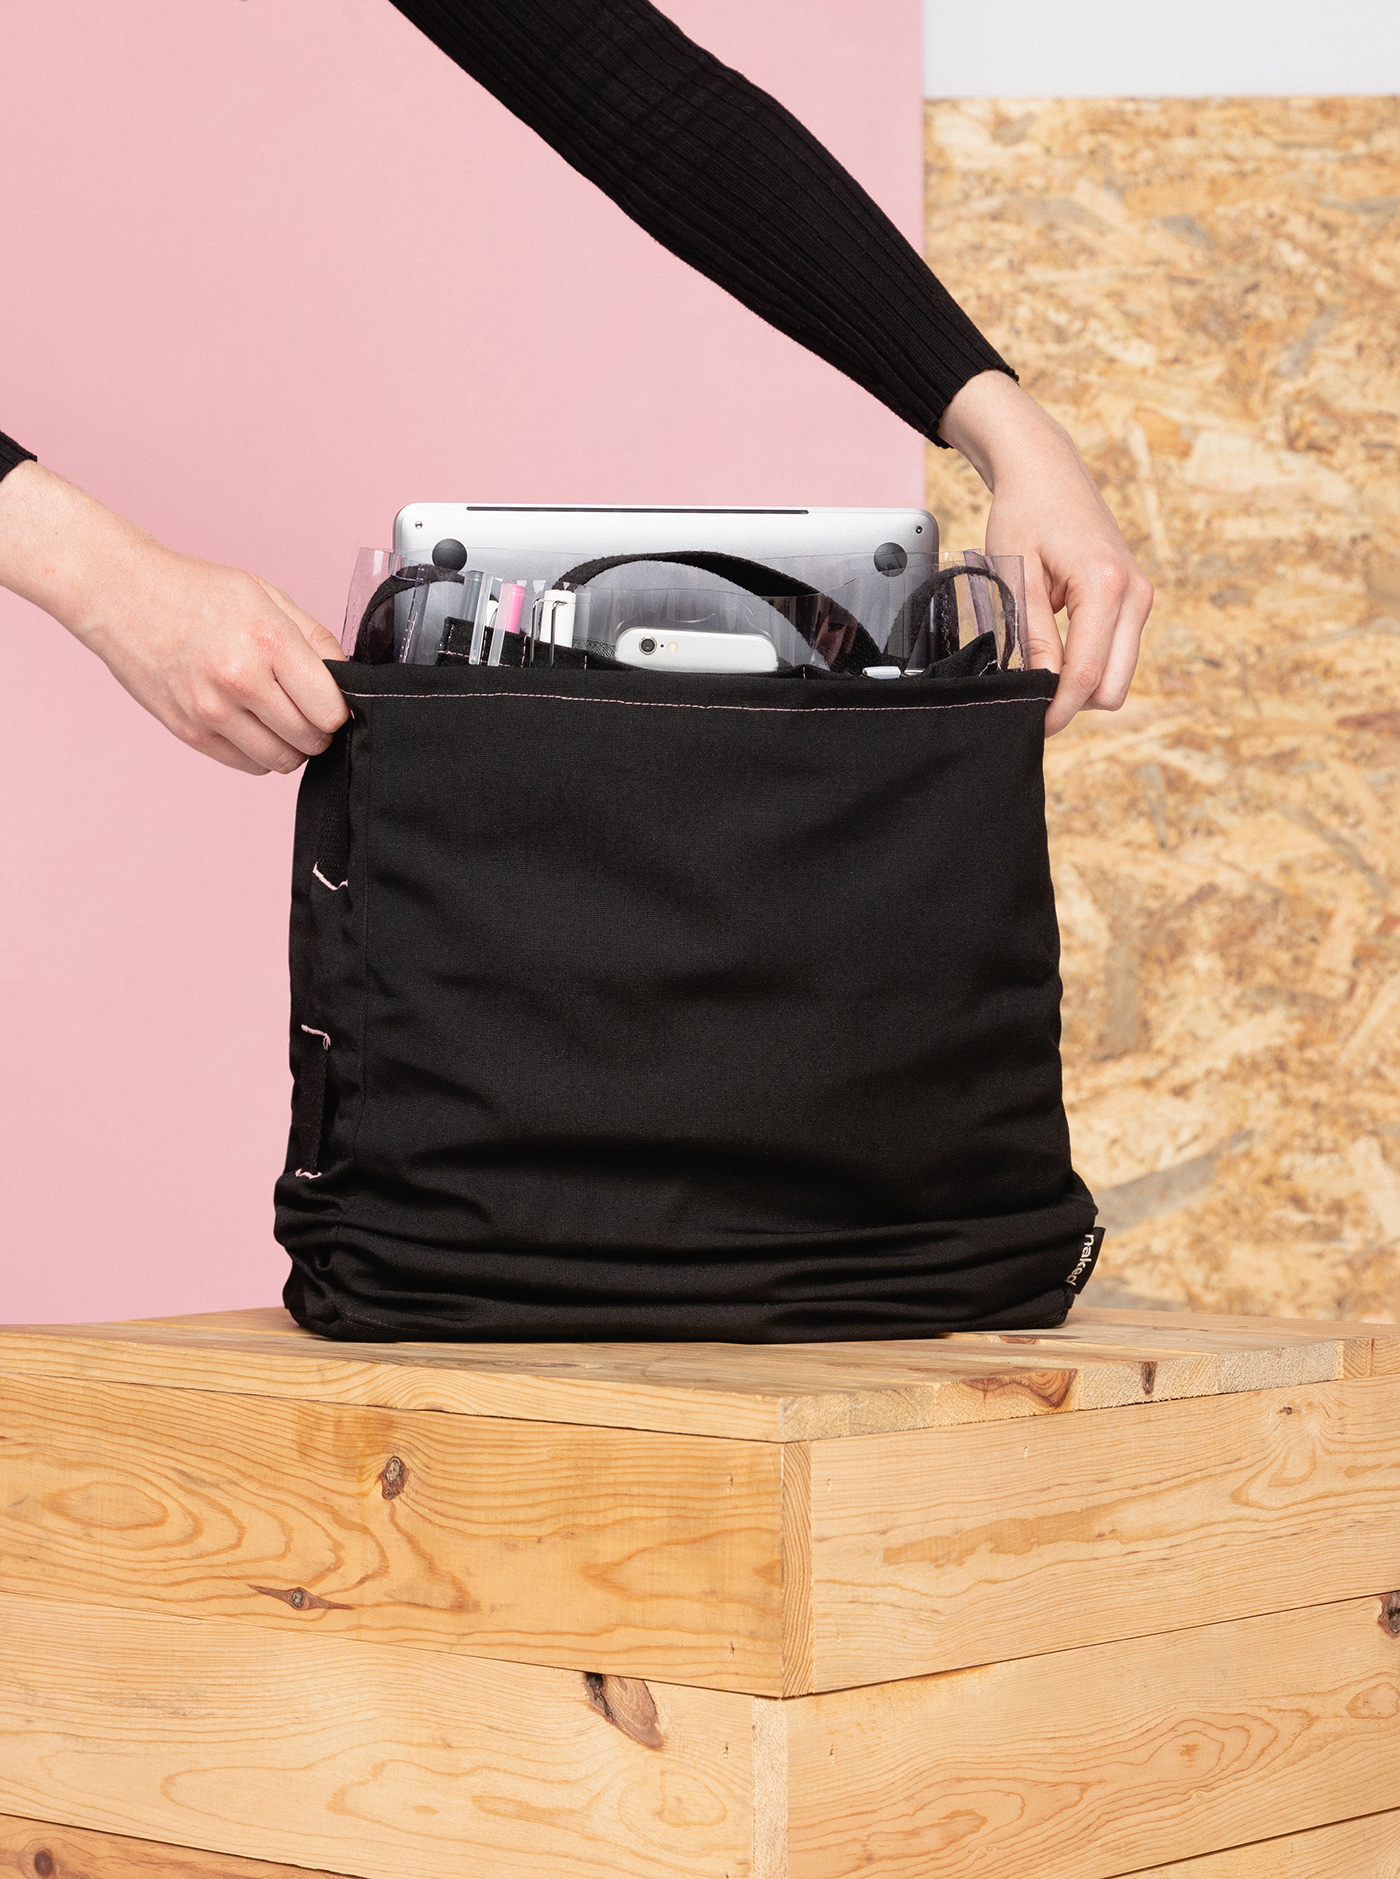 naked fabric furniture inventives coworking bag backpack design product milan